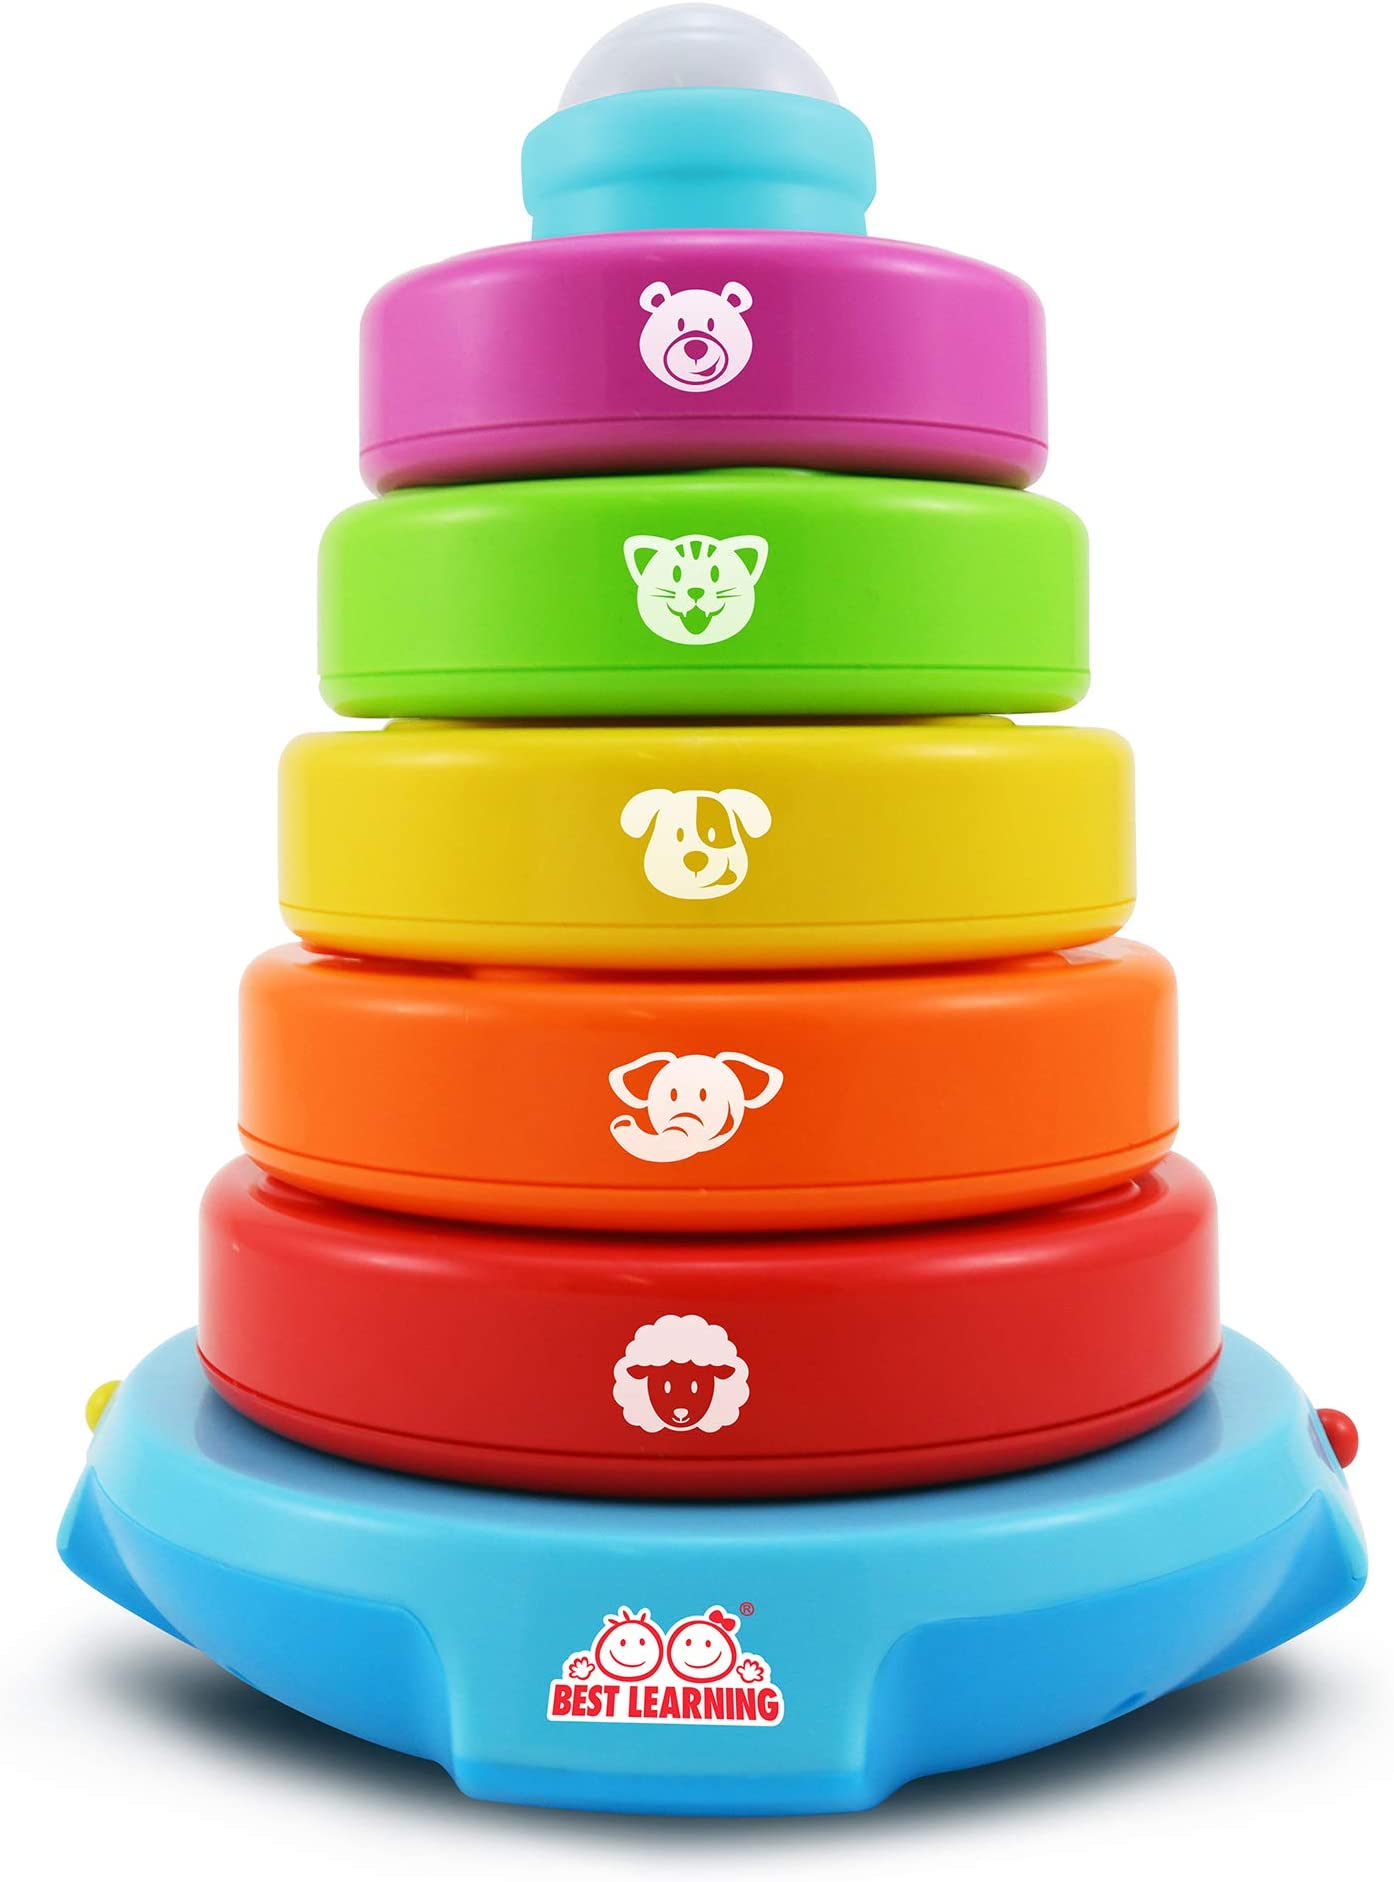 2Pcs Plastic Rainbow Stacking Ring Educational Toy for Kids Children Gift